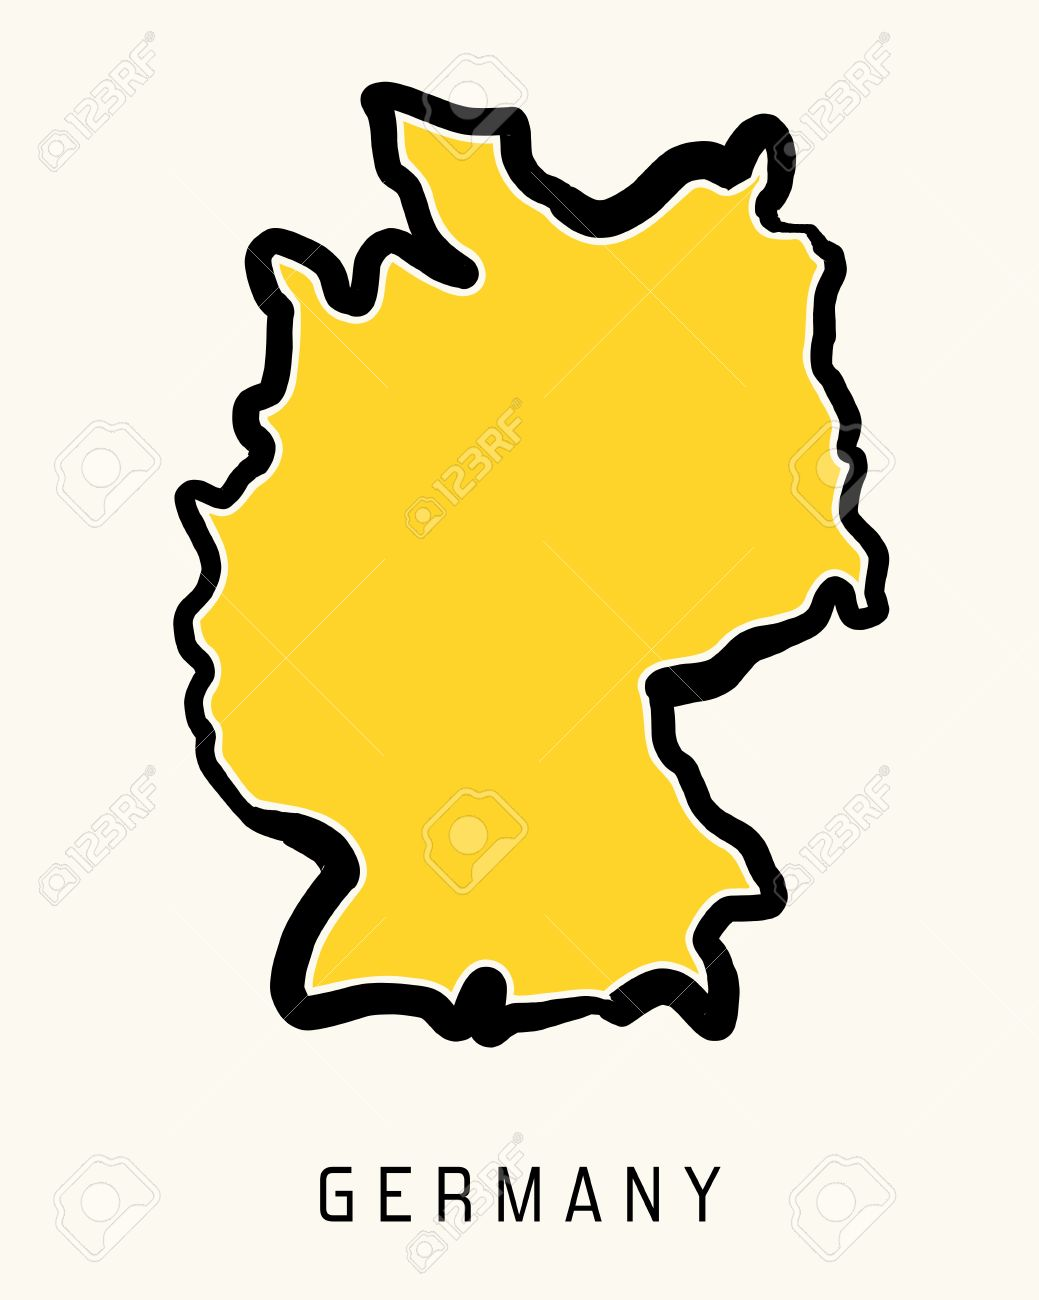 Germany clipart yellow. Cross country at getdrawings